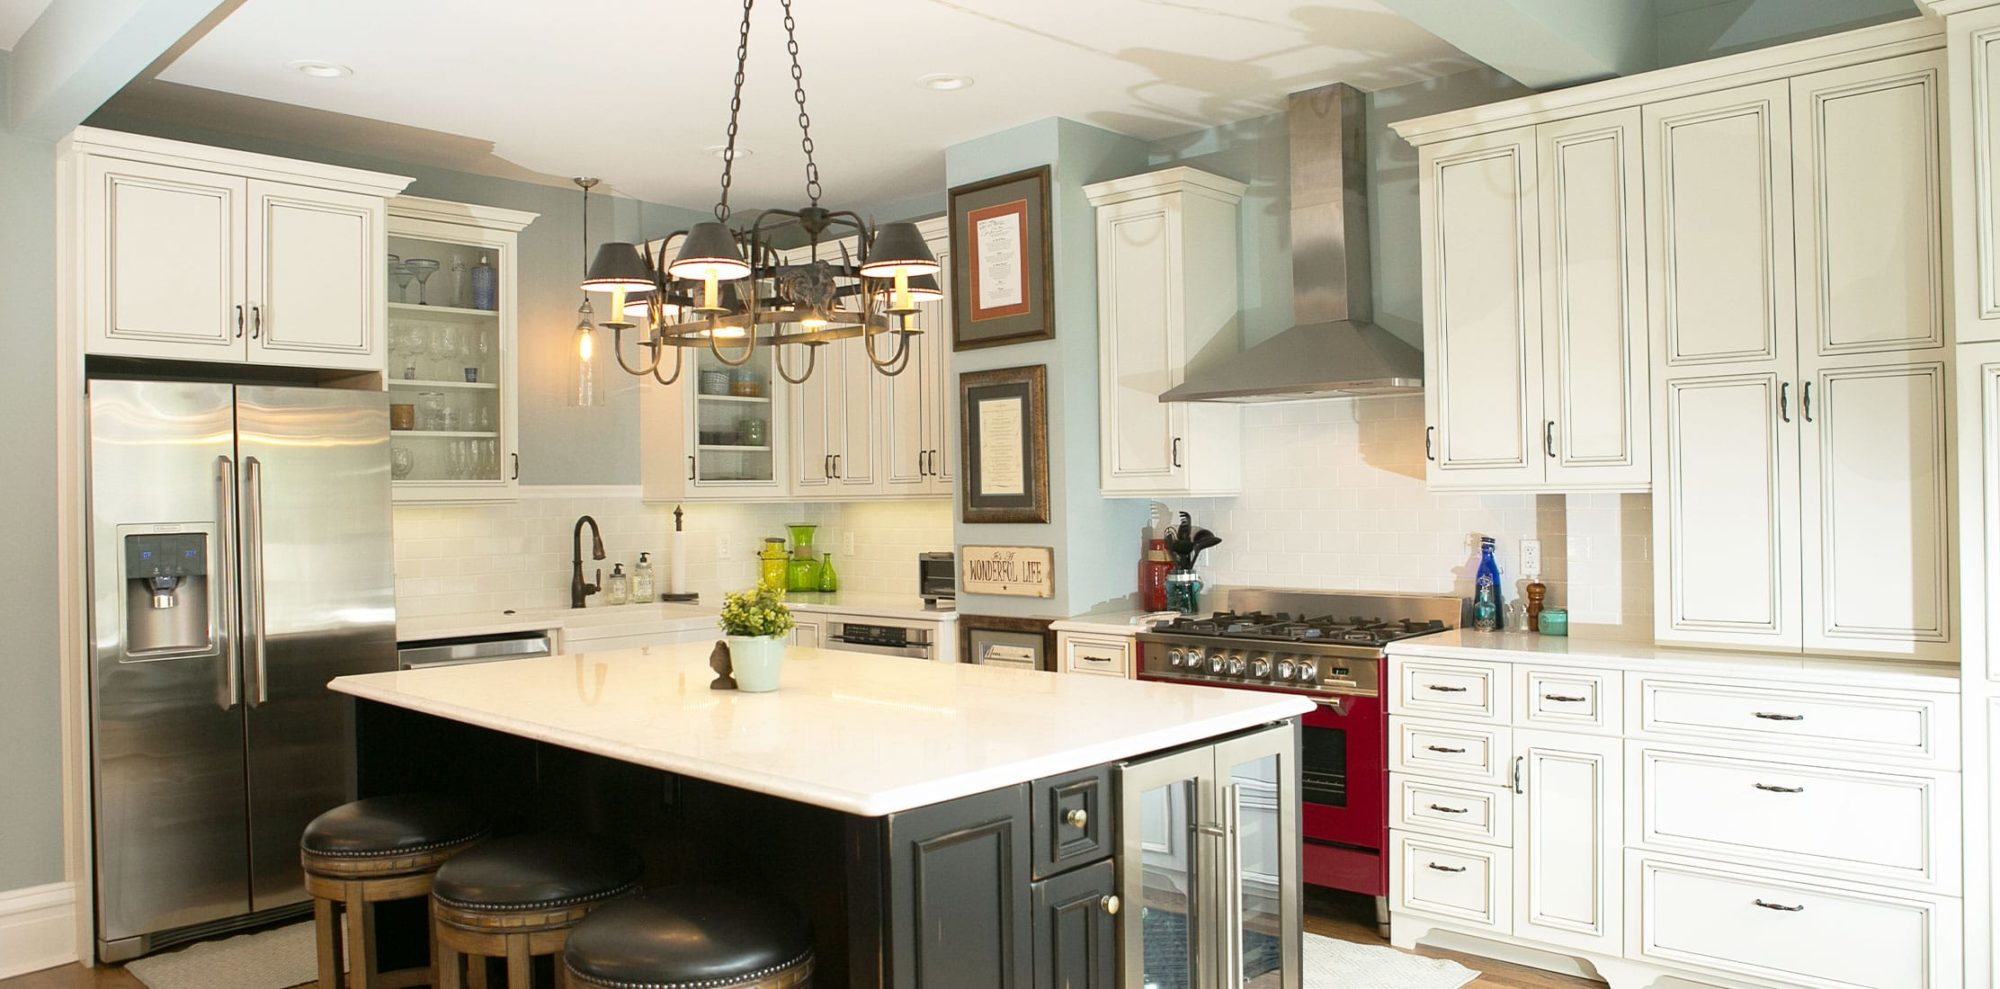 Ornate white kitchen cabinets with contrasting island in modern renovated kitchen